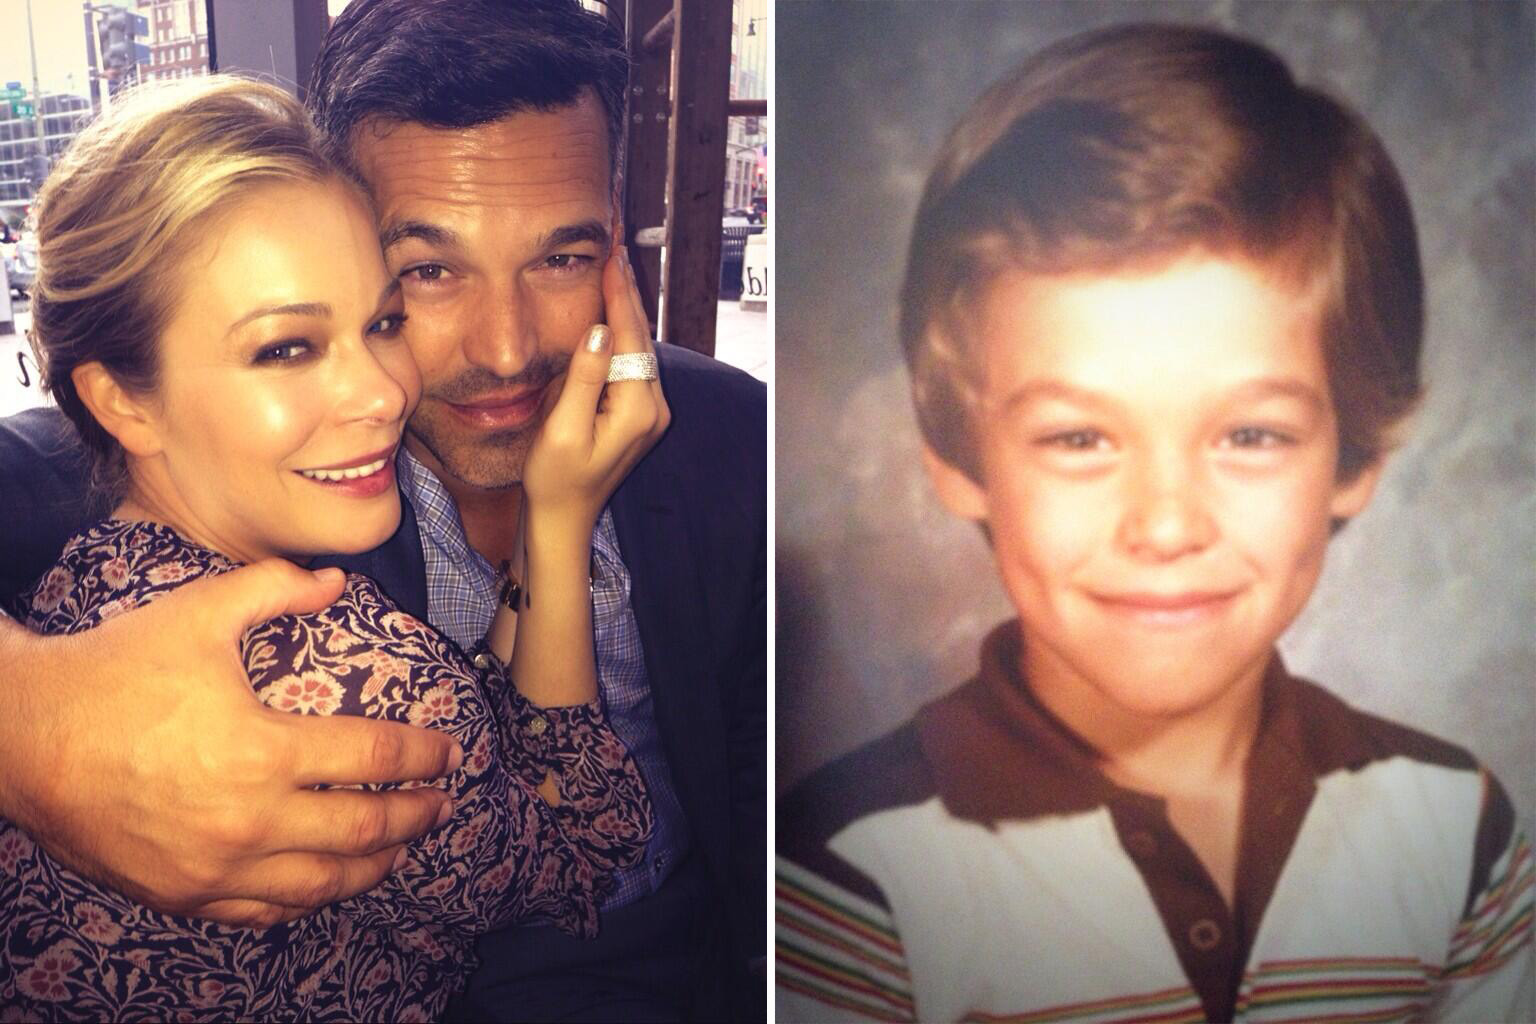 LeAnn Rimes and Eddie Cibrian pictured in August; Cibrian as a little boy. (Twitter)